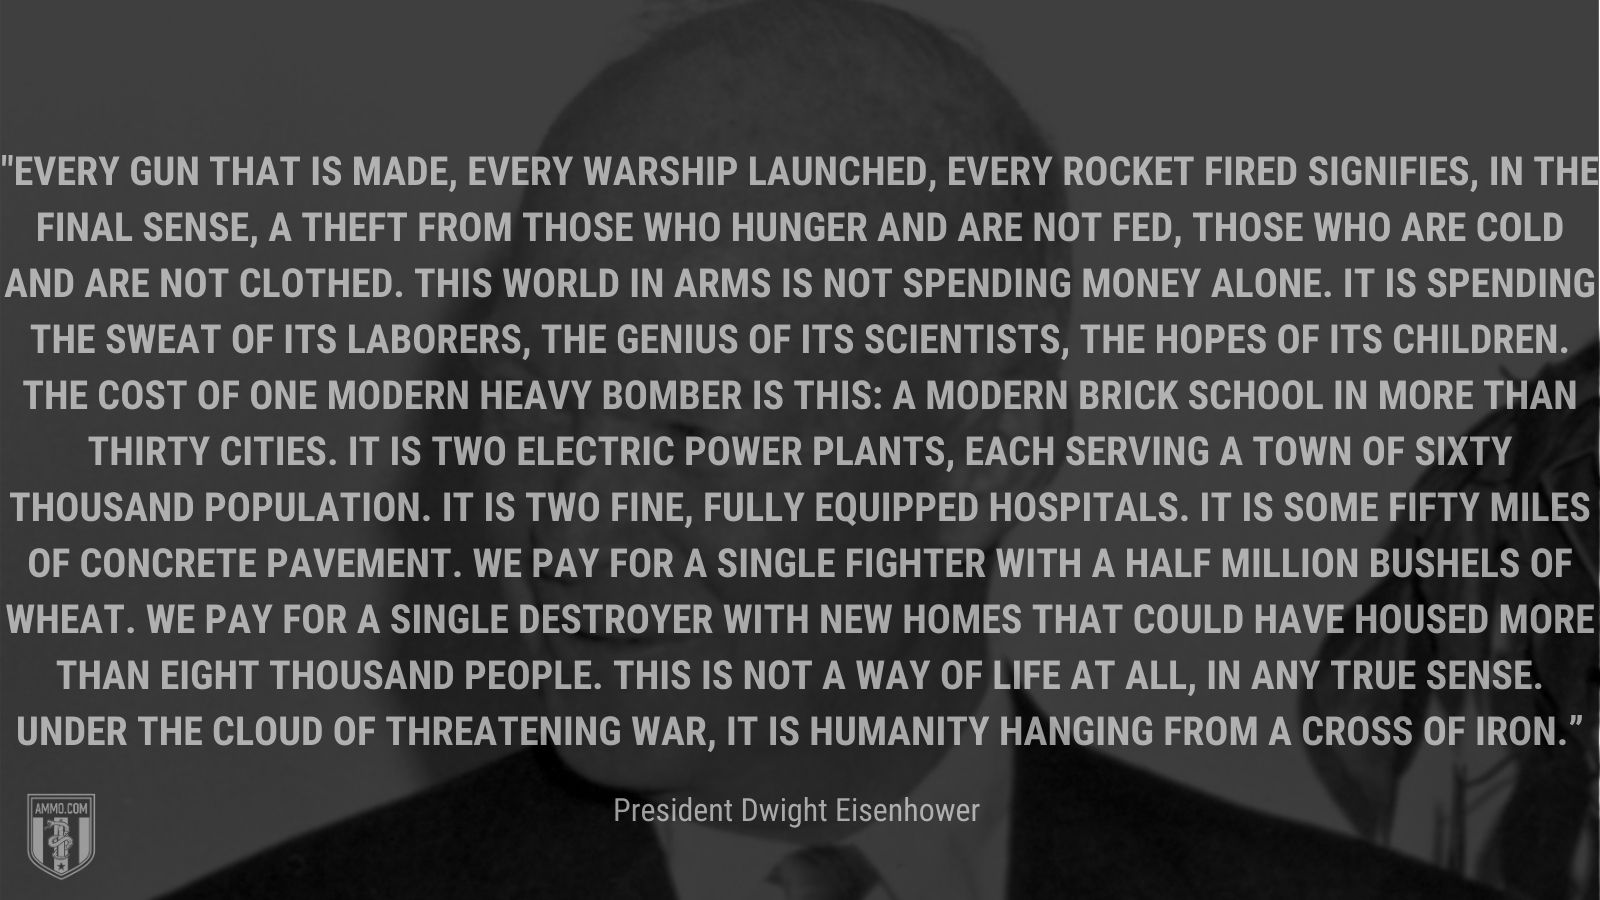 """""""Every gun that is made, every warship launched, every rocket fired signifies, in the final sense, a theft from those who hunger and are not fed, those who are cold and are not clothed. This world in arms is not spending money alone. It is spending the sweat of its laborers, the genius of its scientists, the hopes of its children. The cost of one modern heavy bomber is this: a modern brick school in more than thirty cities. It is two electric power plants, each serving a town of sixty thousand population. It is two fine, fully equipped hospitals. It is some fifty miles of concrete pavement. We pay for a single fighter with a half million bushels of wheat. We pay for a single destroyer with new homes that could have housed more than eight thousand people. This is not a way of life at all, in any true sense. Under the cloud of threatening war, it is humanity hanging from a cross of iron."""" - President Dwight Eisenhower"""